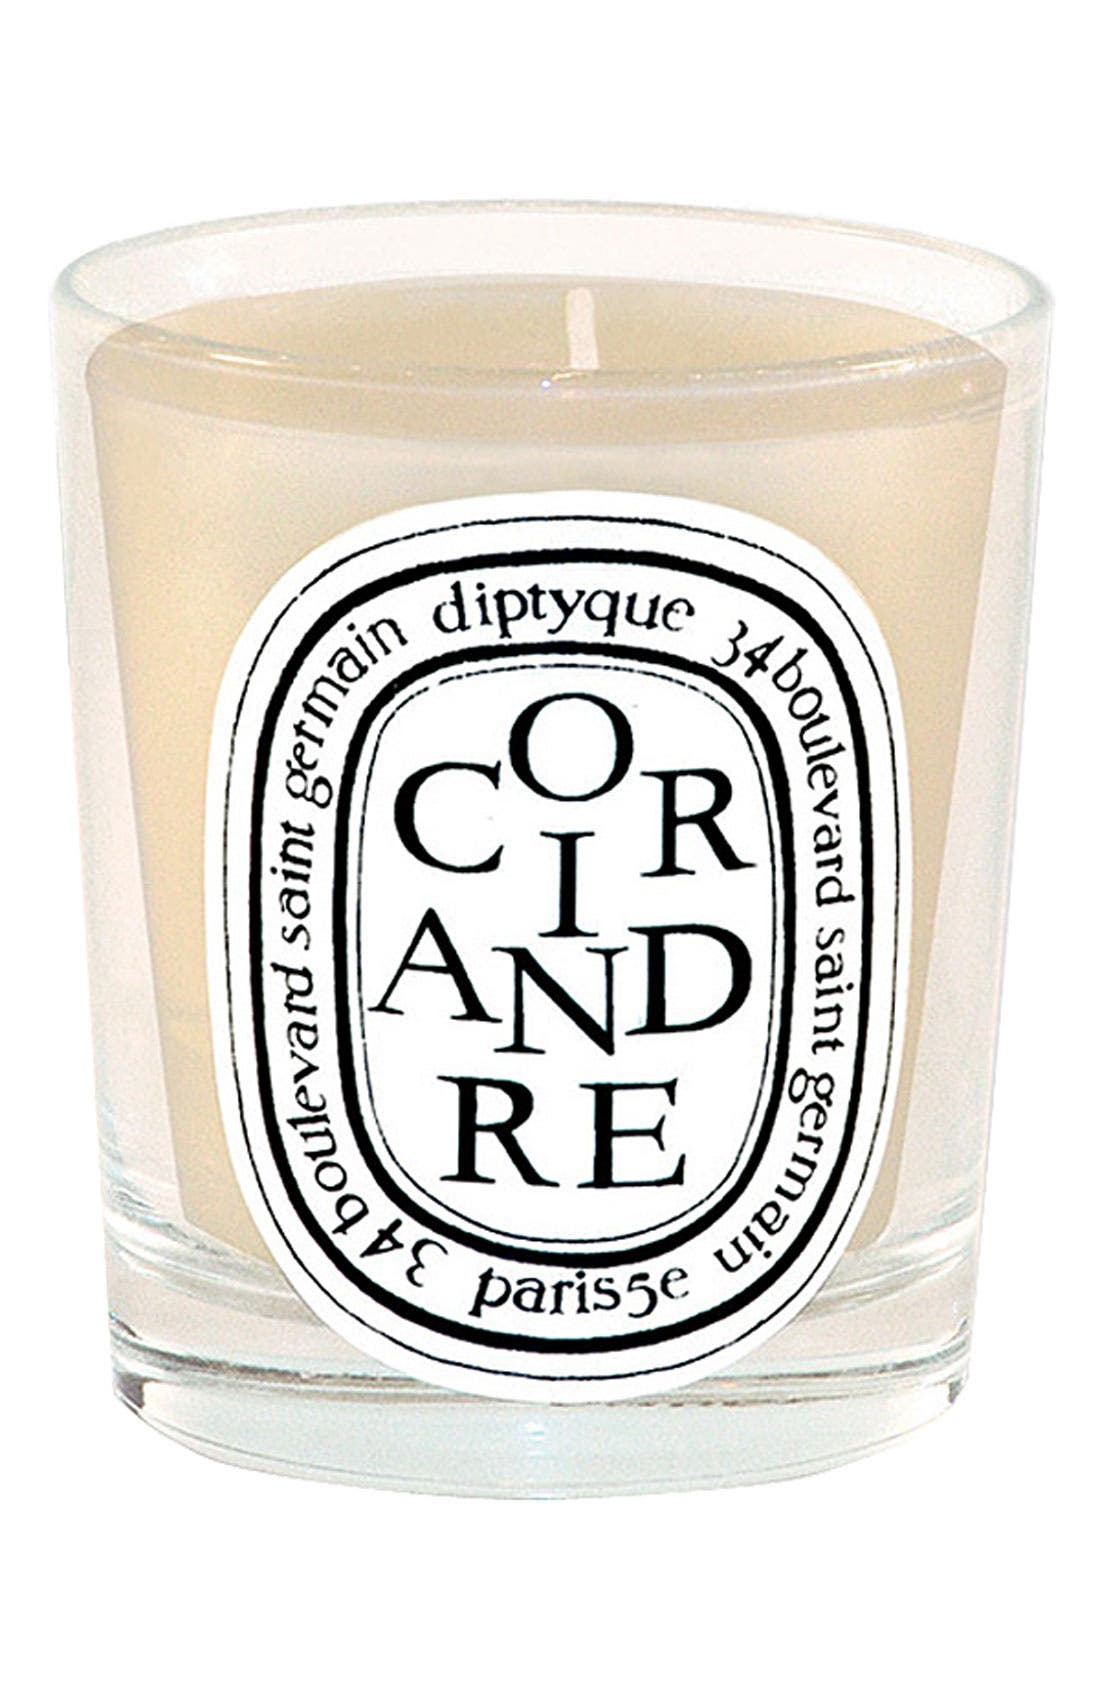 Coriandre/Coriander Scented Candle,                             Main thumbnail 1, color,